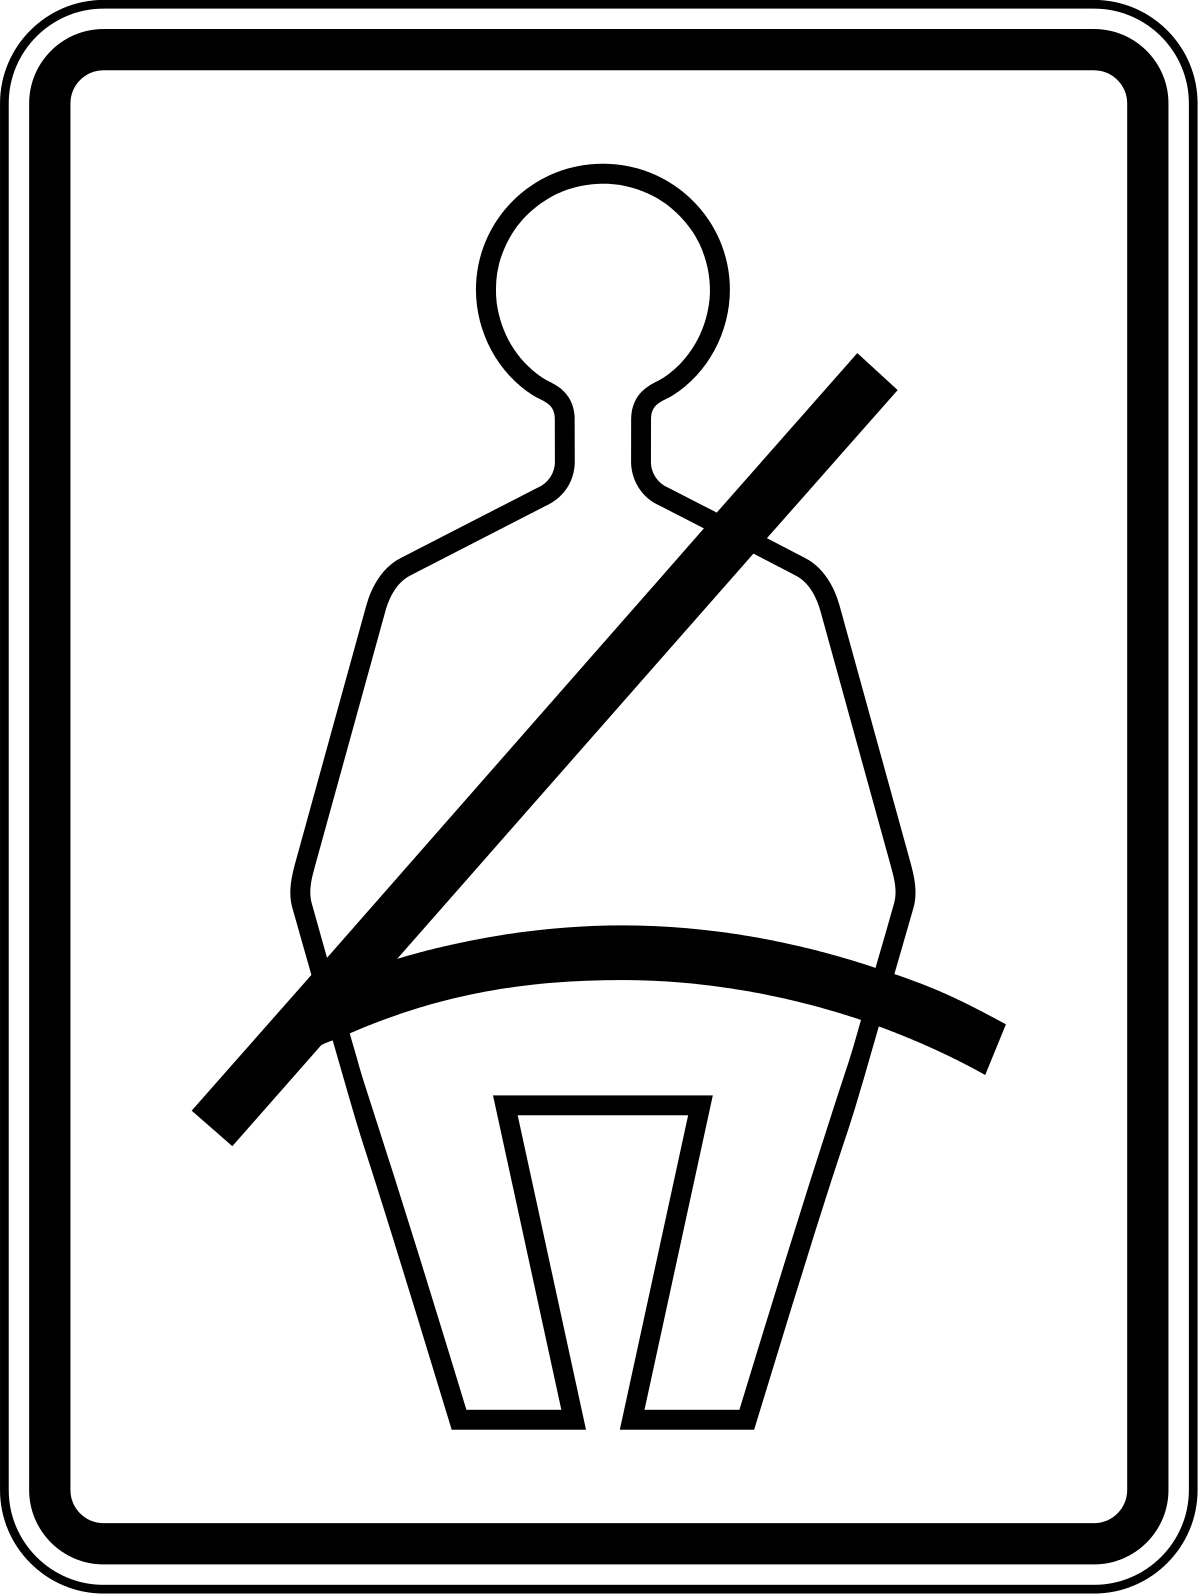 Seat belts for 8 year olds clipart banner royalty free stock Seat belt use rates in the United States - Wikipedia banner royalty free stock